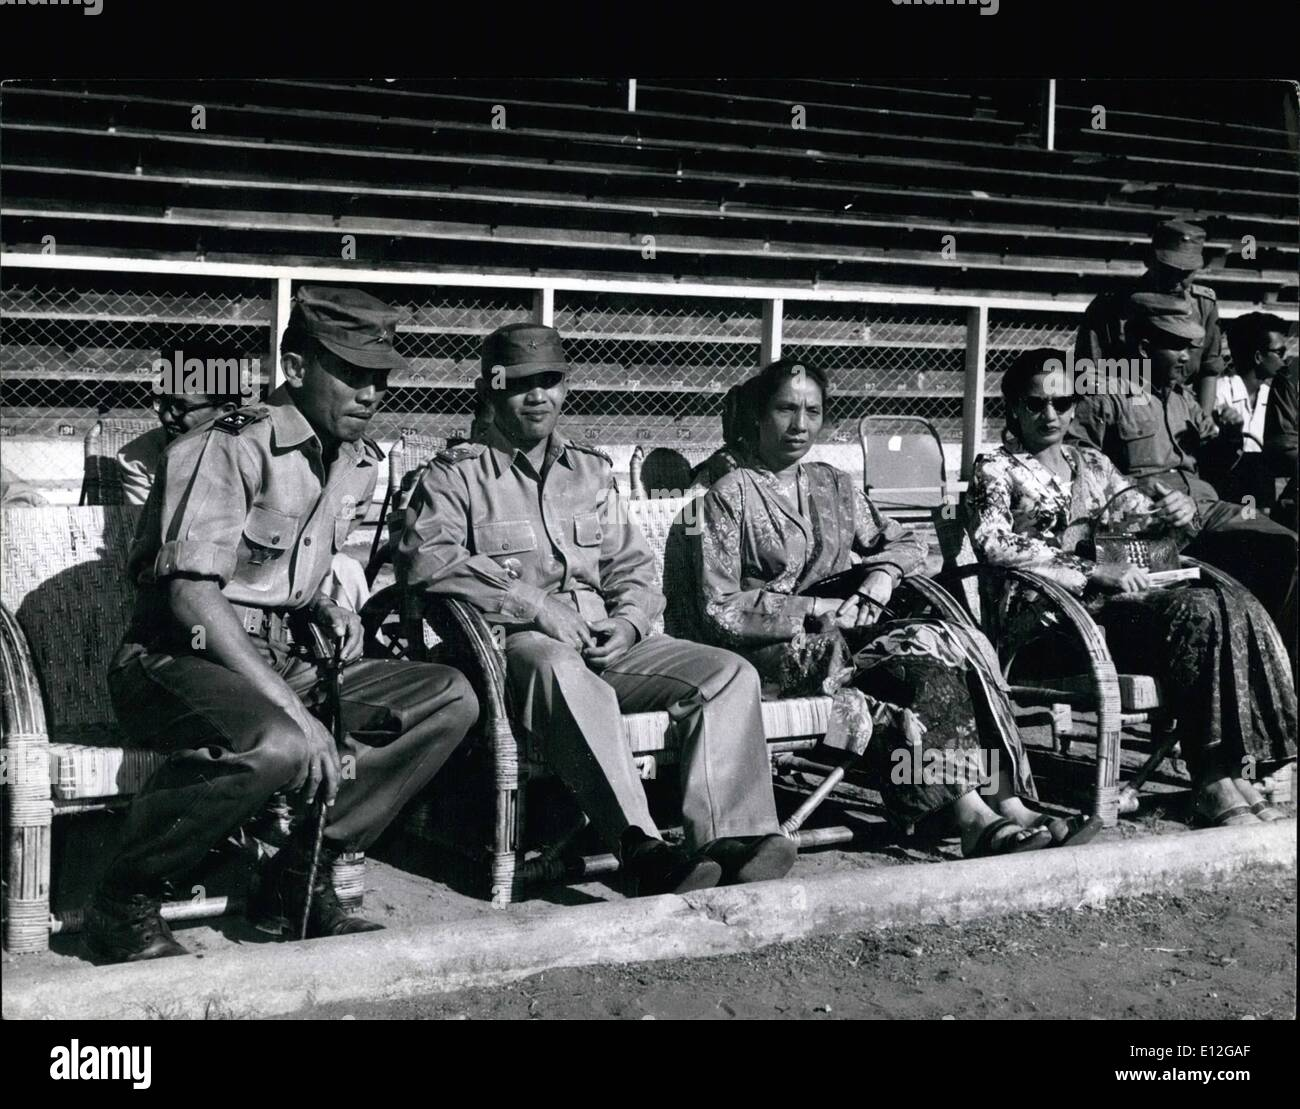 Dec. 26, 2011 - Indonesian Personalities: Watching the installation ceremony of the new Central Sumatran military commander at Padang are 1 - r: Col. Achmad Jani, Lt. Gen. Nasution (Chief of Staff) Mrs. Kharuddin (wife of the Governor) and Mrs. Nasution, whose mother is Dutch. - Stock Image